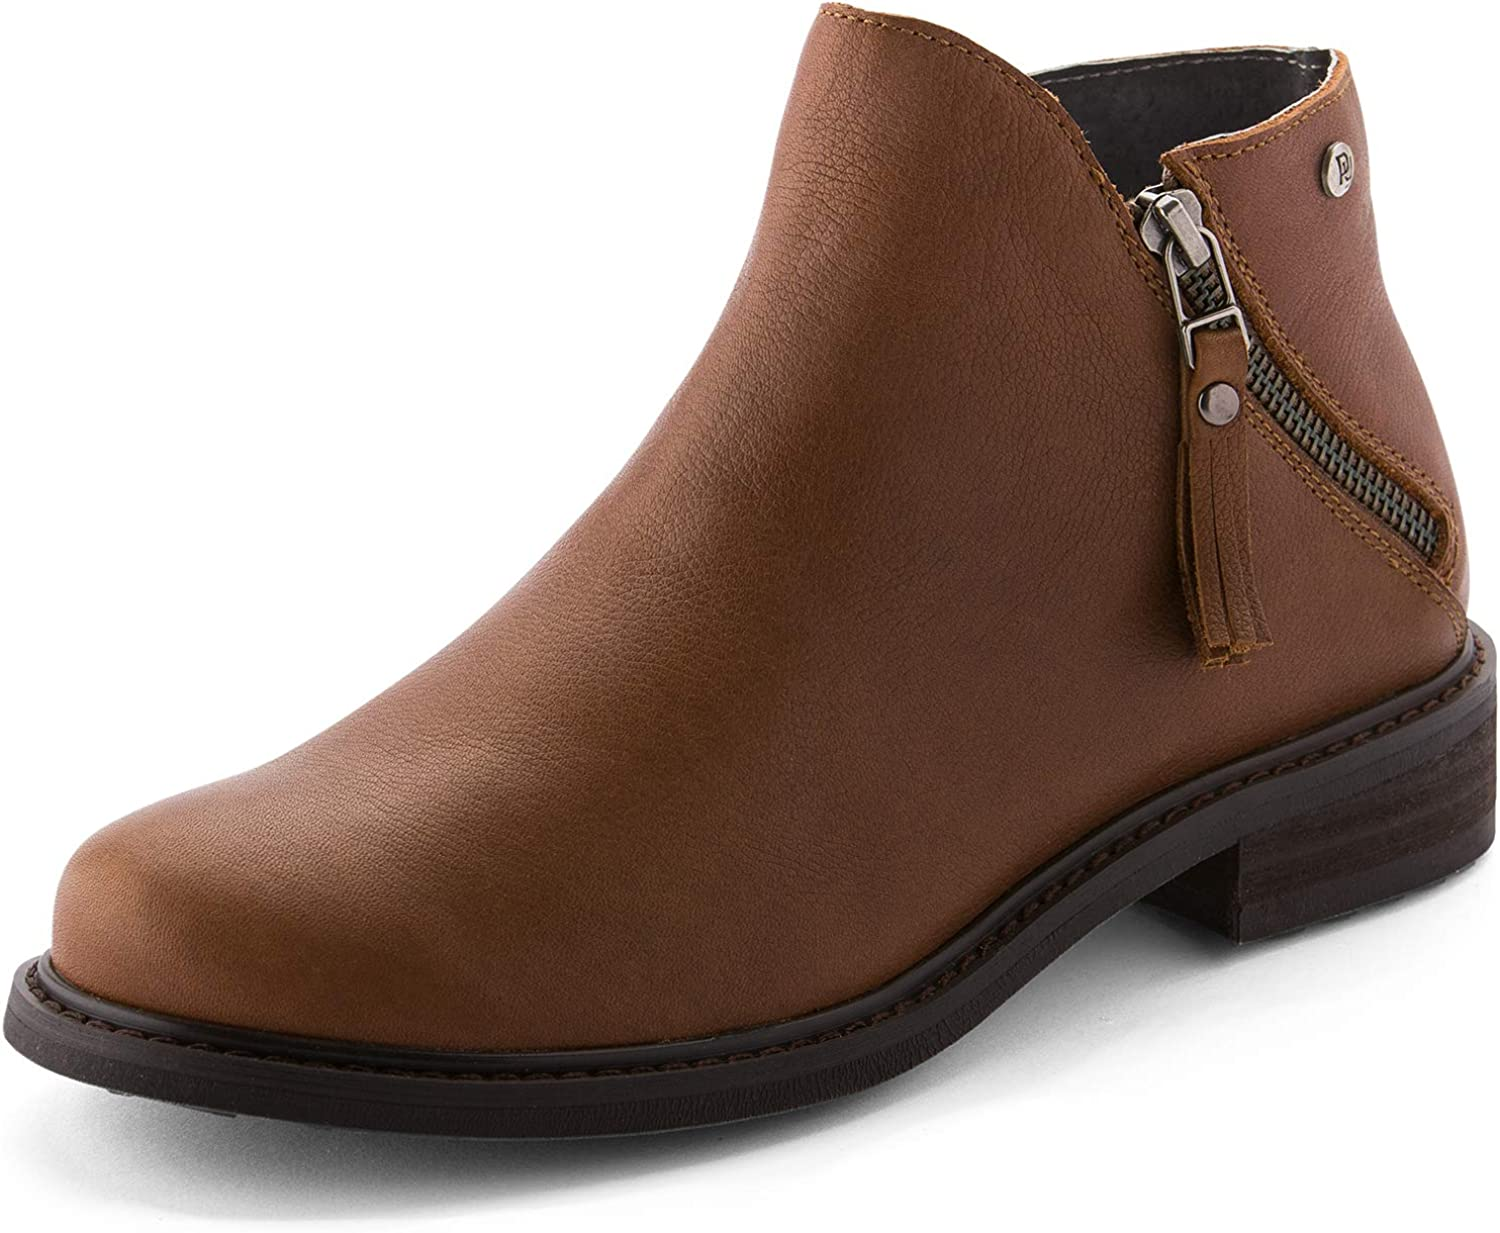 Parfeying Ankle Boots, Waterproof Booties, Non-Slip Rubber Sole, Casual shoes, Pig Leather Lining